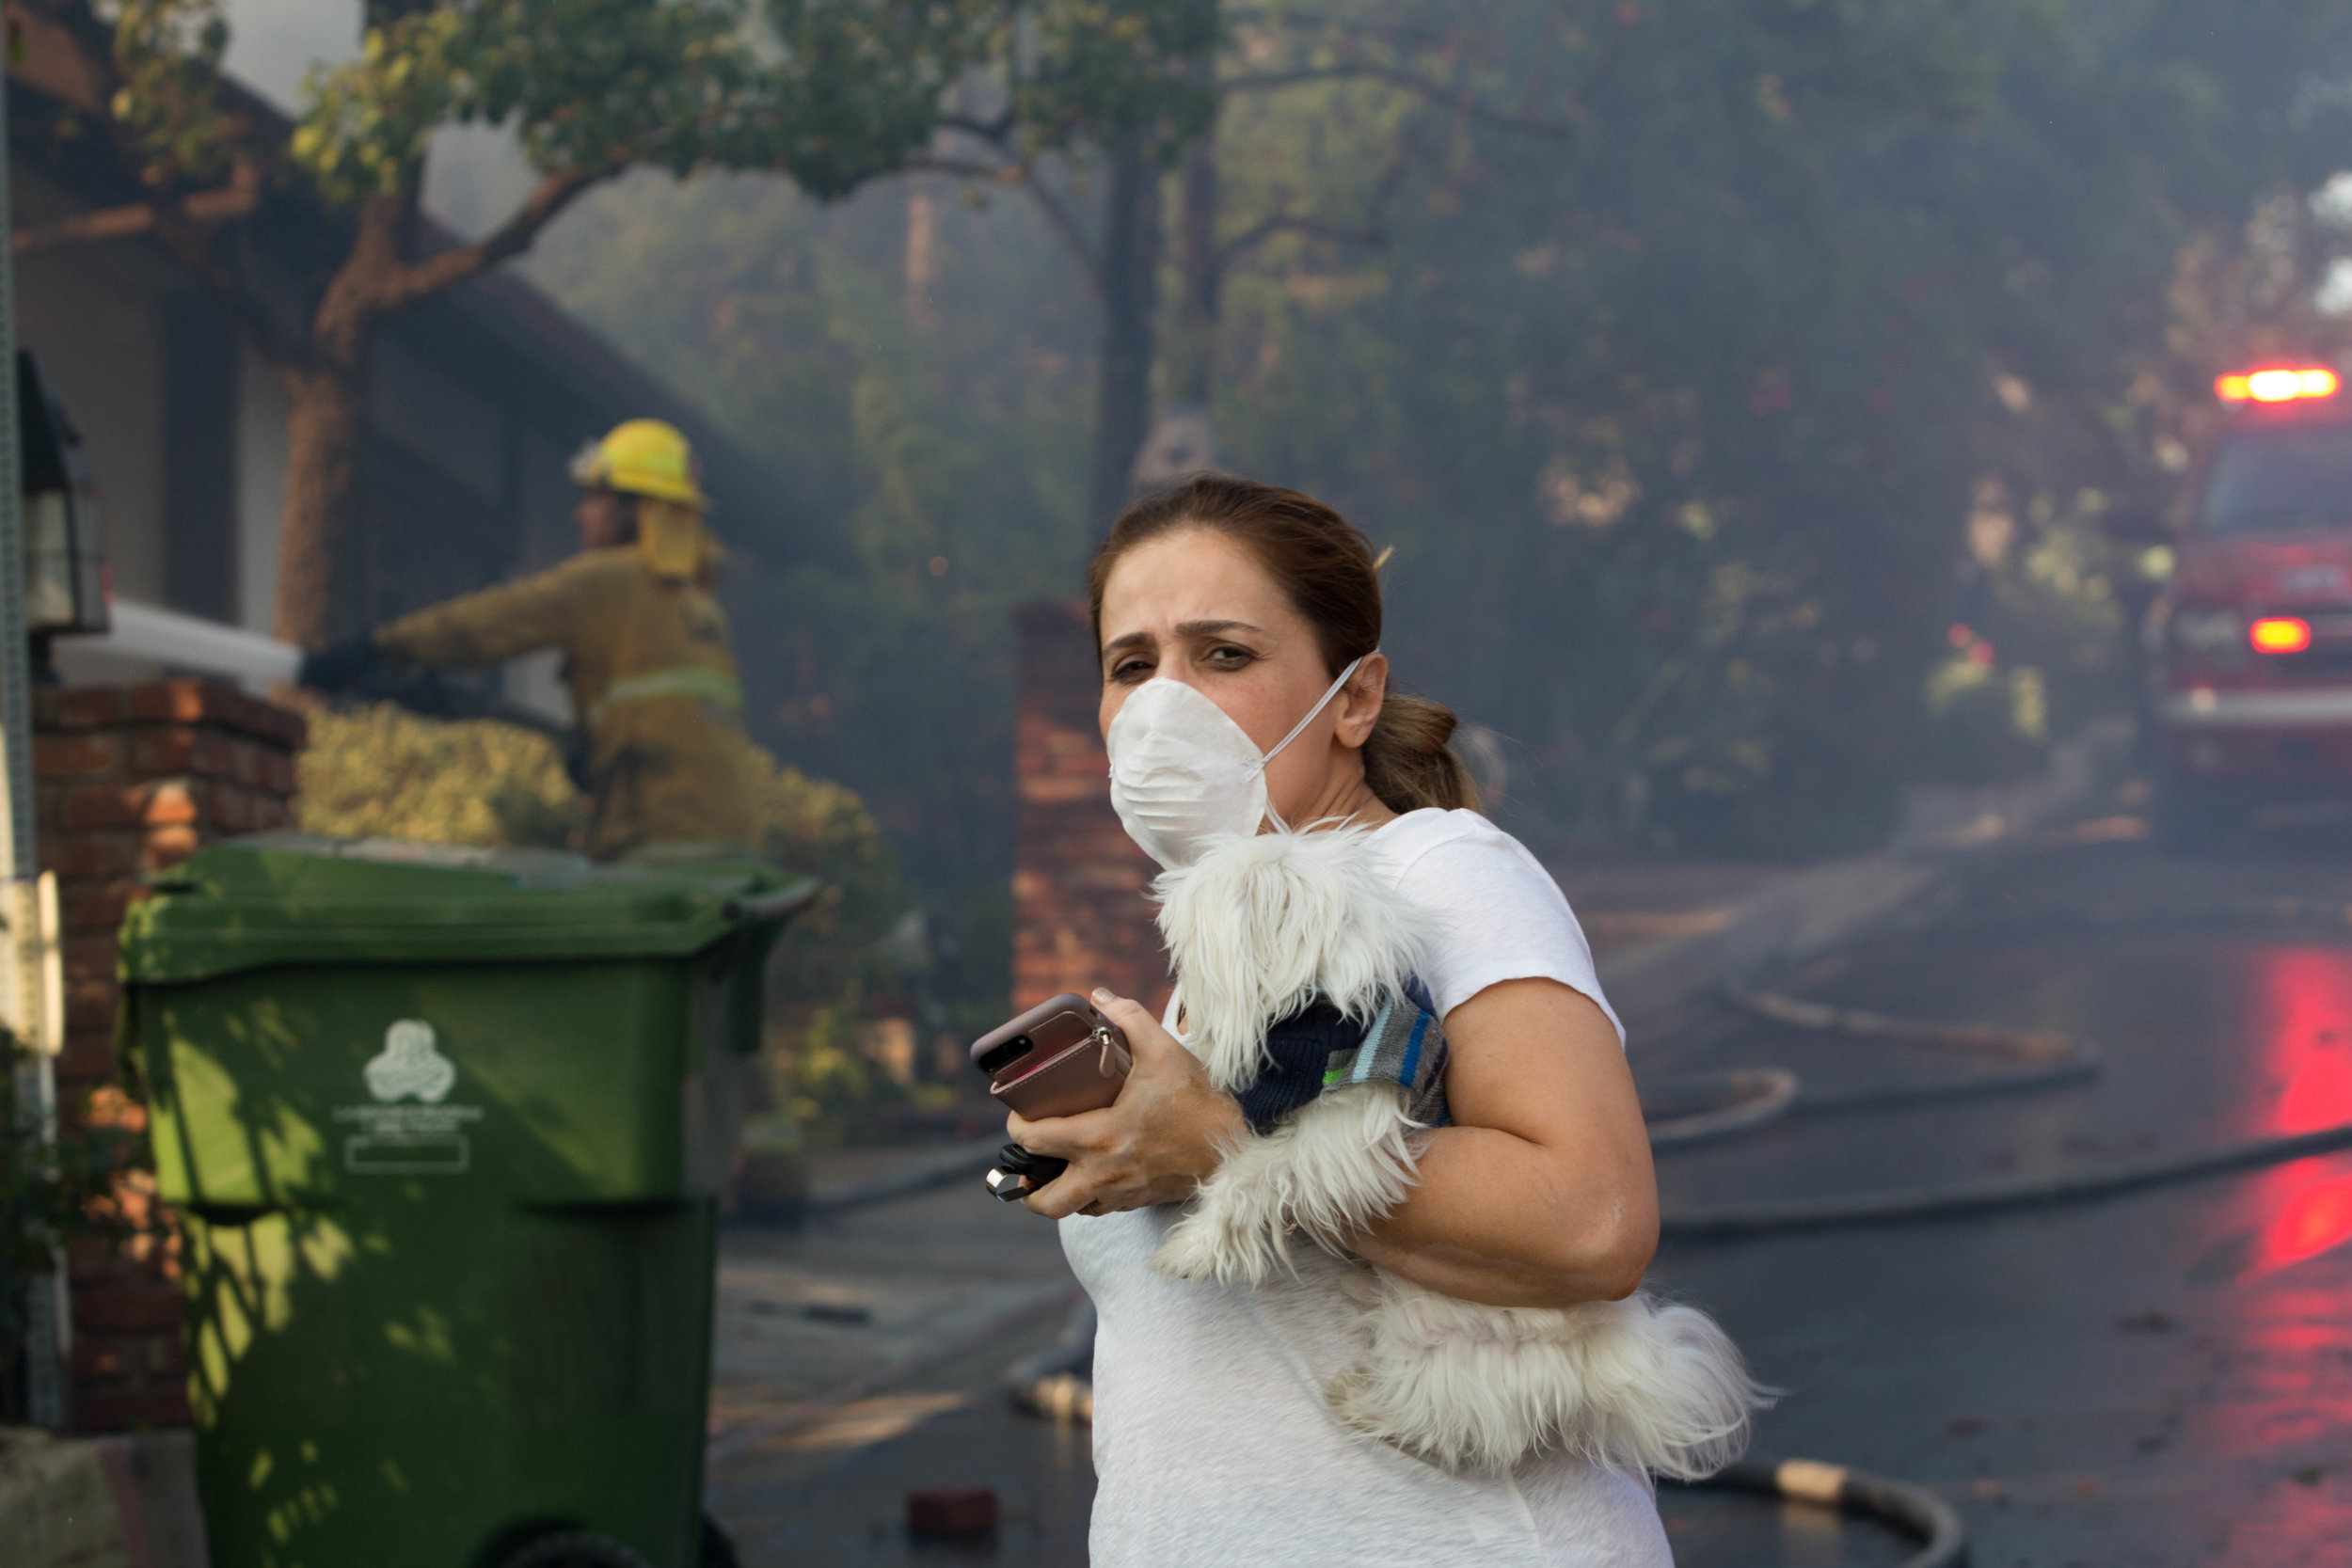 A distraught resident evacuates from her home along Casiano Road with her pet during the Skirball Fire on Wednesday, Dec.6, 2017 in Los Angeles, California. (Jose Lopez)